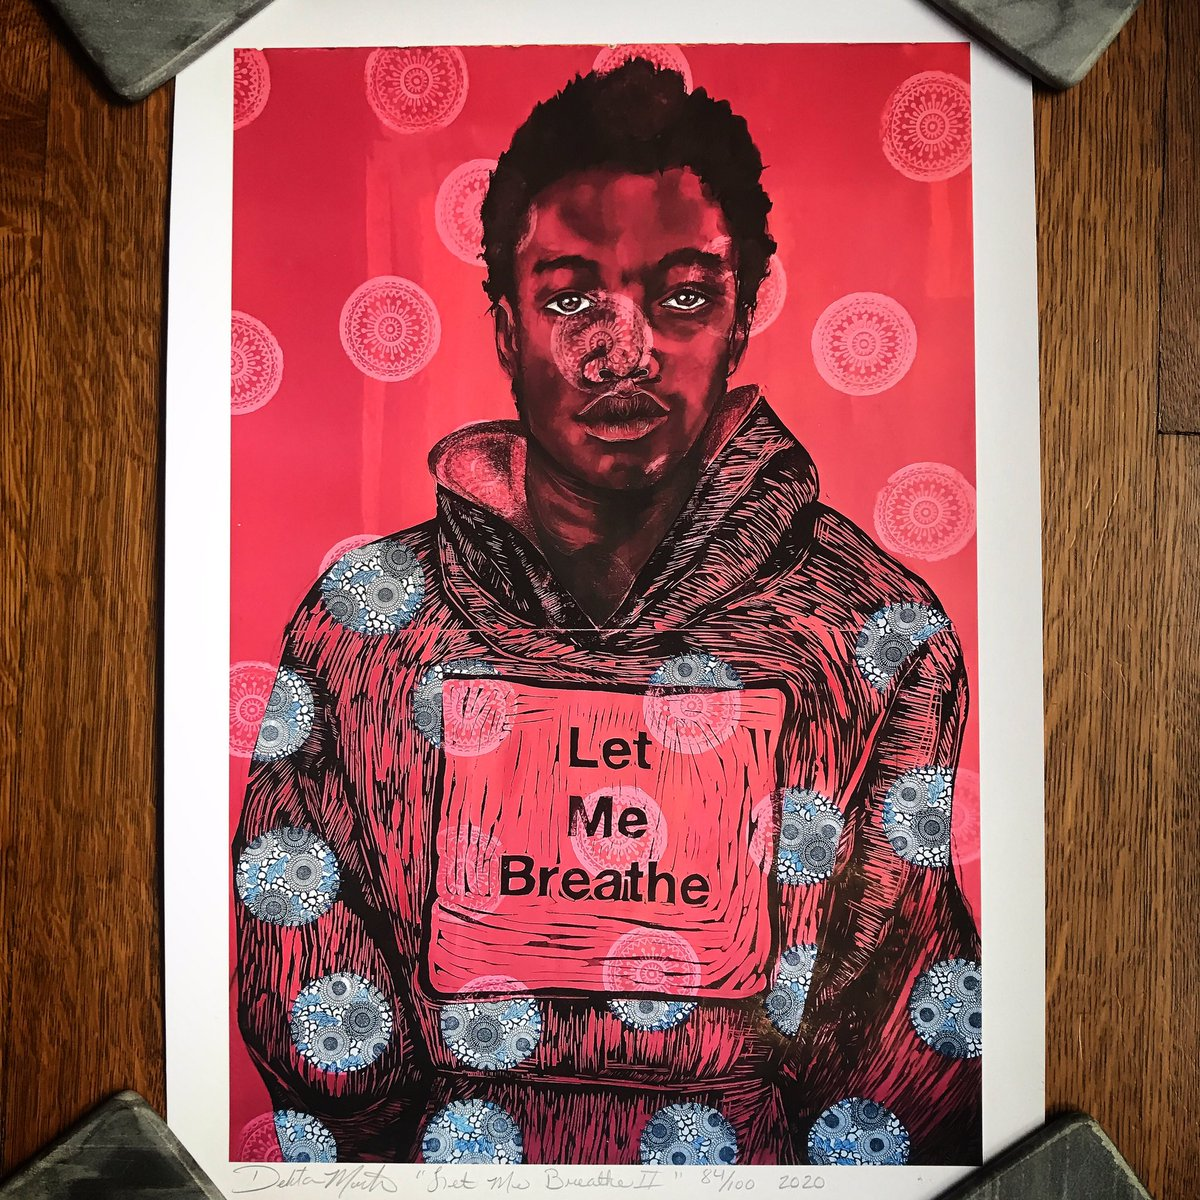 "Stunning! Thx @DelitaMartin / @blackboxpress for ""Let Me Breathe."" So honored to have had a chance to purchase this art as protest & to support the Art as Activism fund. Can't wait to see it on the wall. #DelitaMartin #BlackBoxPresss #ArtasActivismFund #blackartcollectors pic.twitter.com/8KNog7i7Qo"